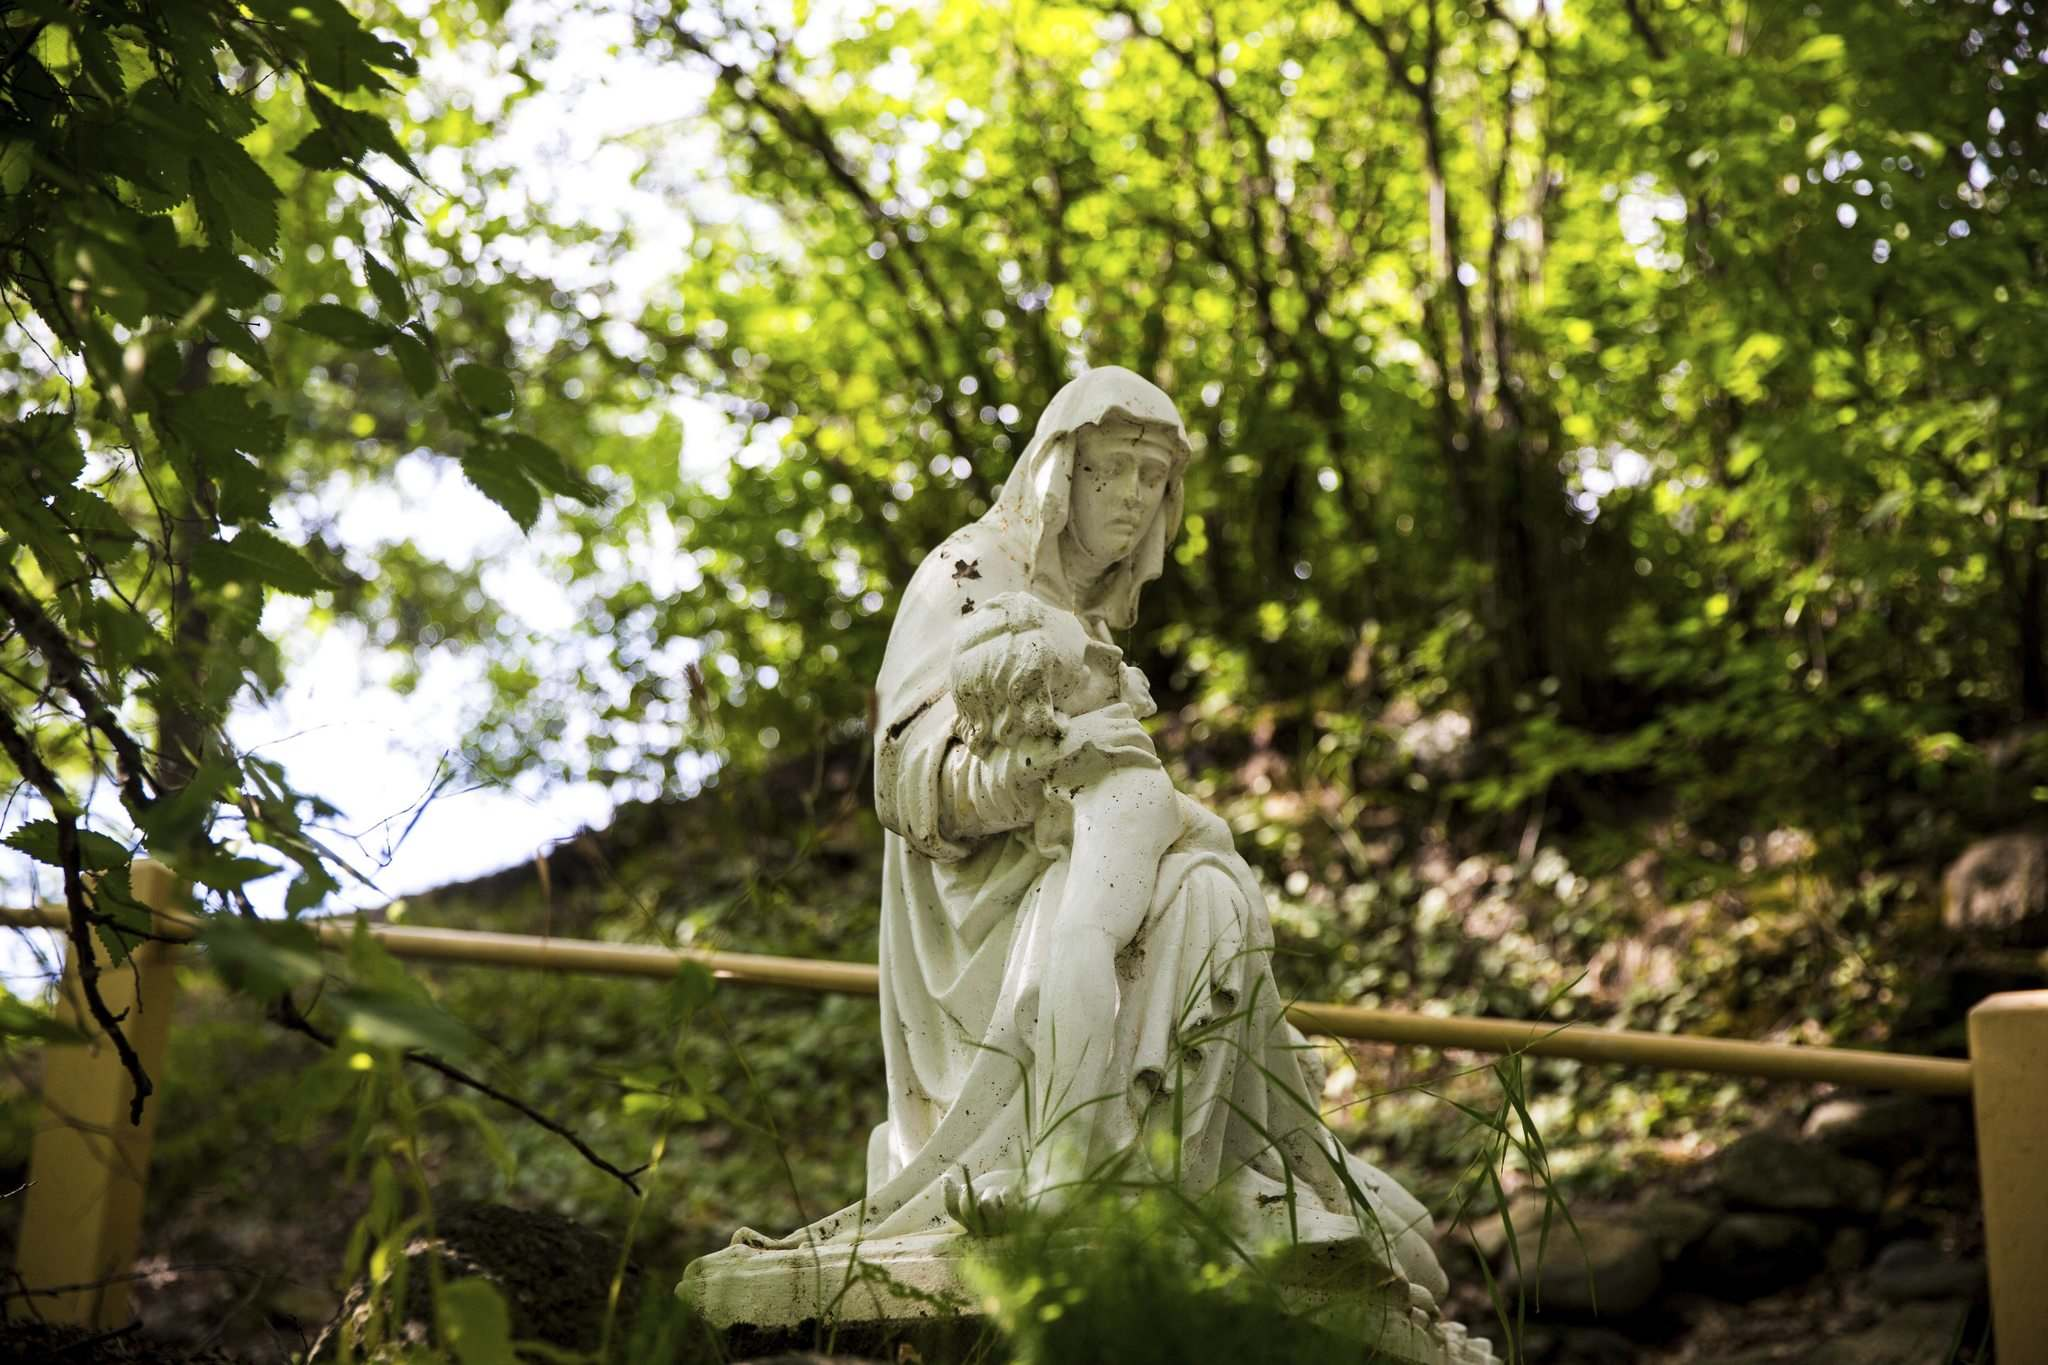 One of the statues at the pilgrimage site.